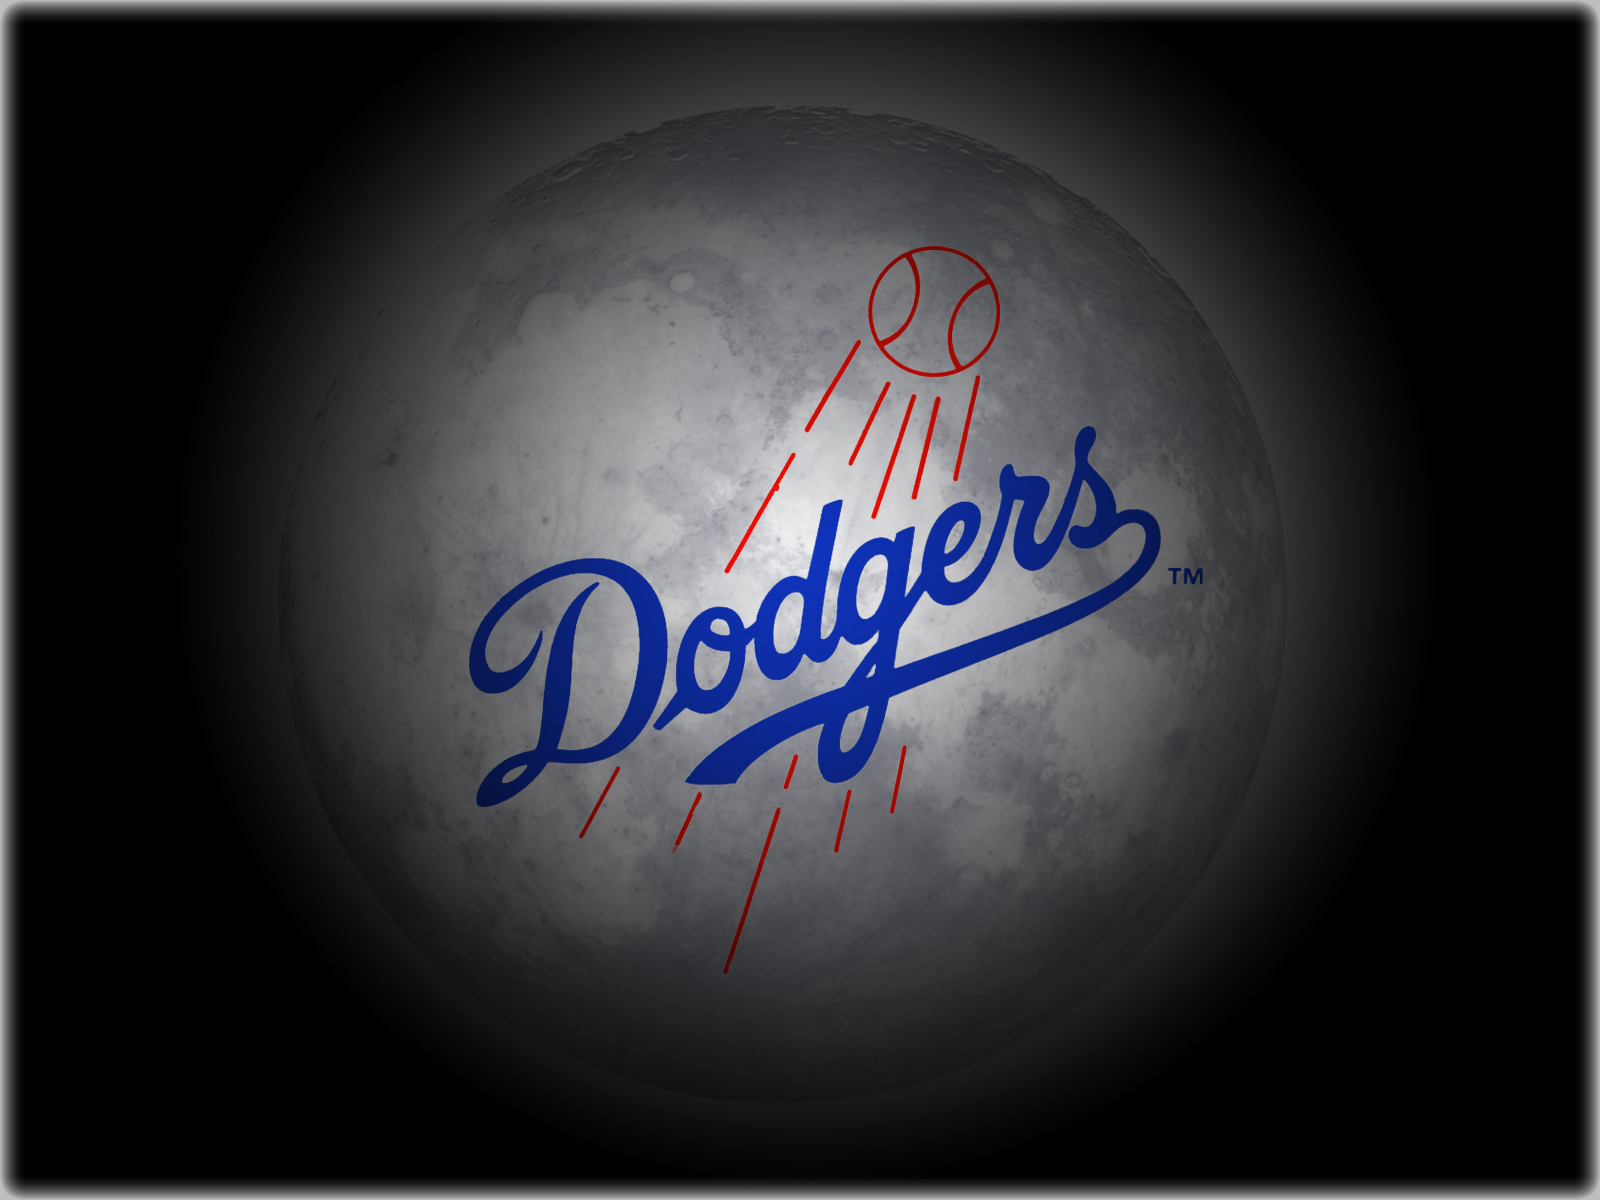 Los Angeles Dodgers wallpapers Los Angeles Dodgers background   Page 1600x1200